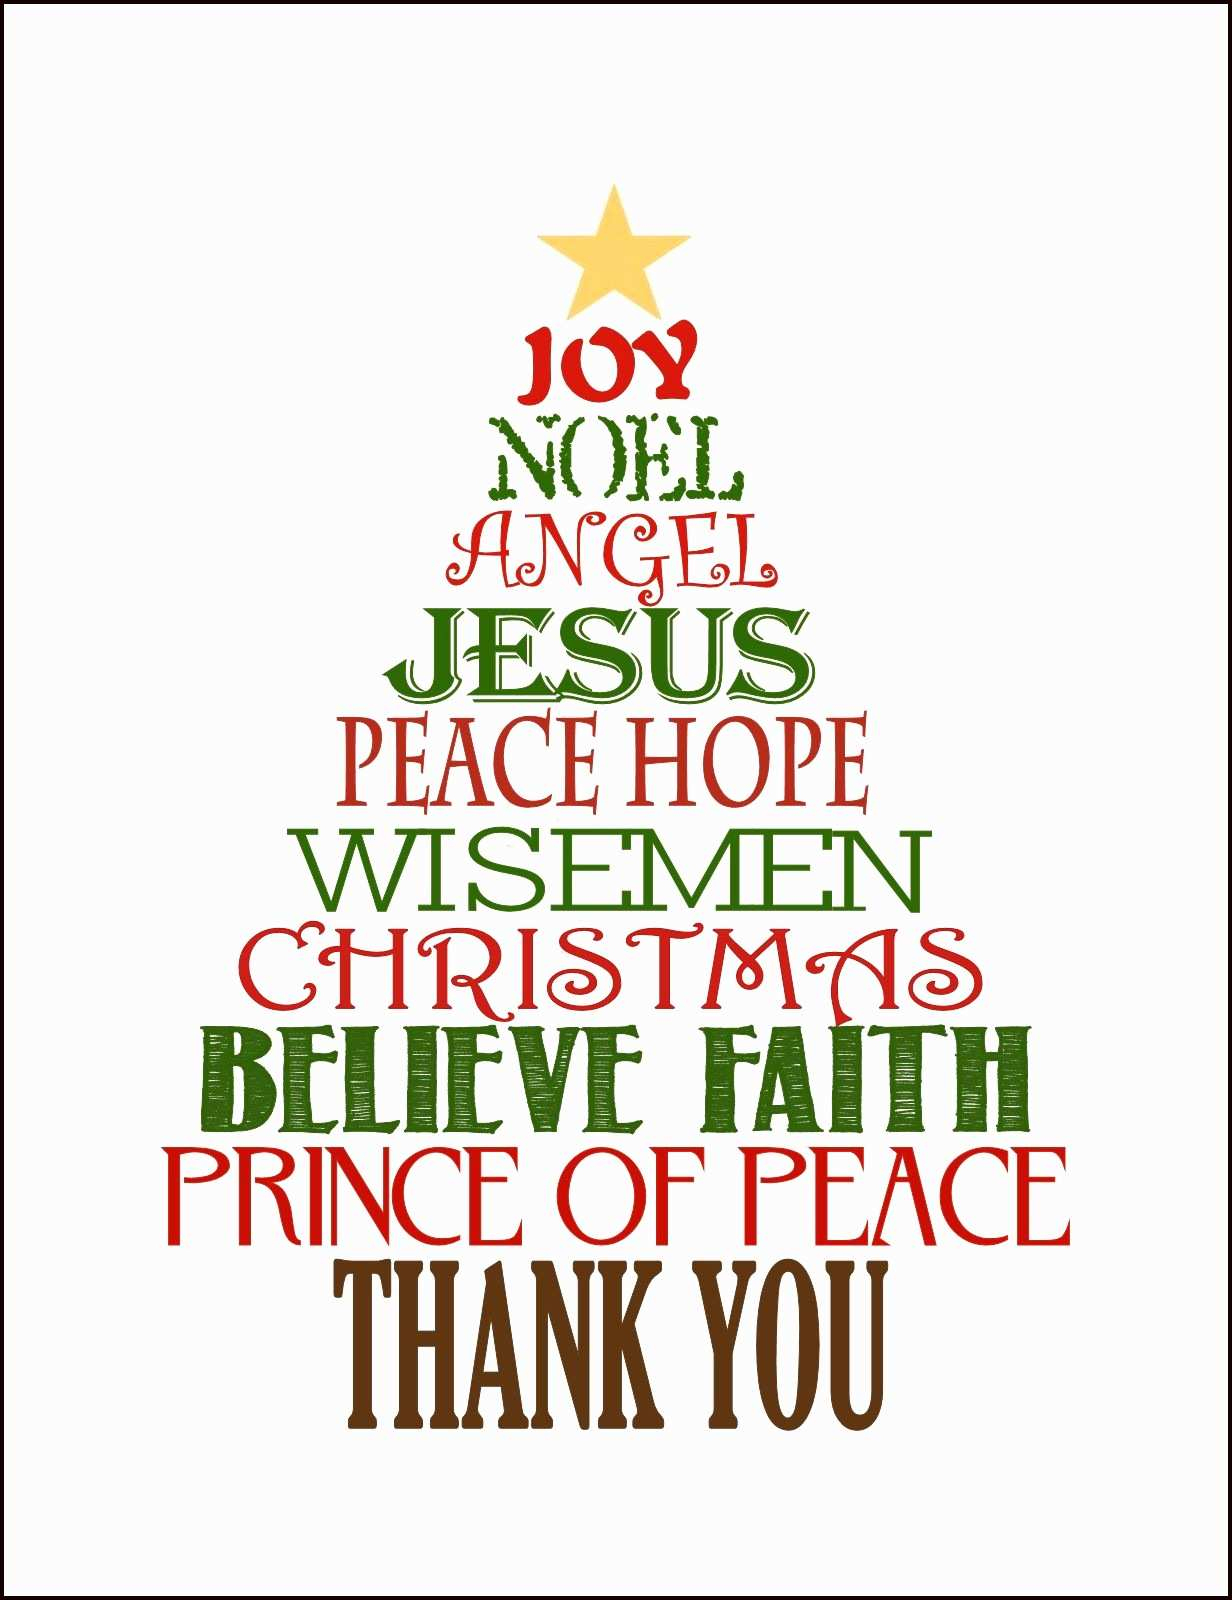 Free Printable Prayer Cards Joy Comes In The Morning - Classy World - Free Printable Christian Christmas Greeting Cards